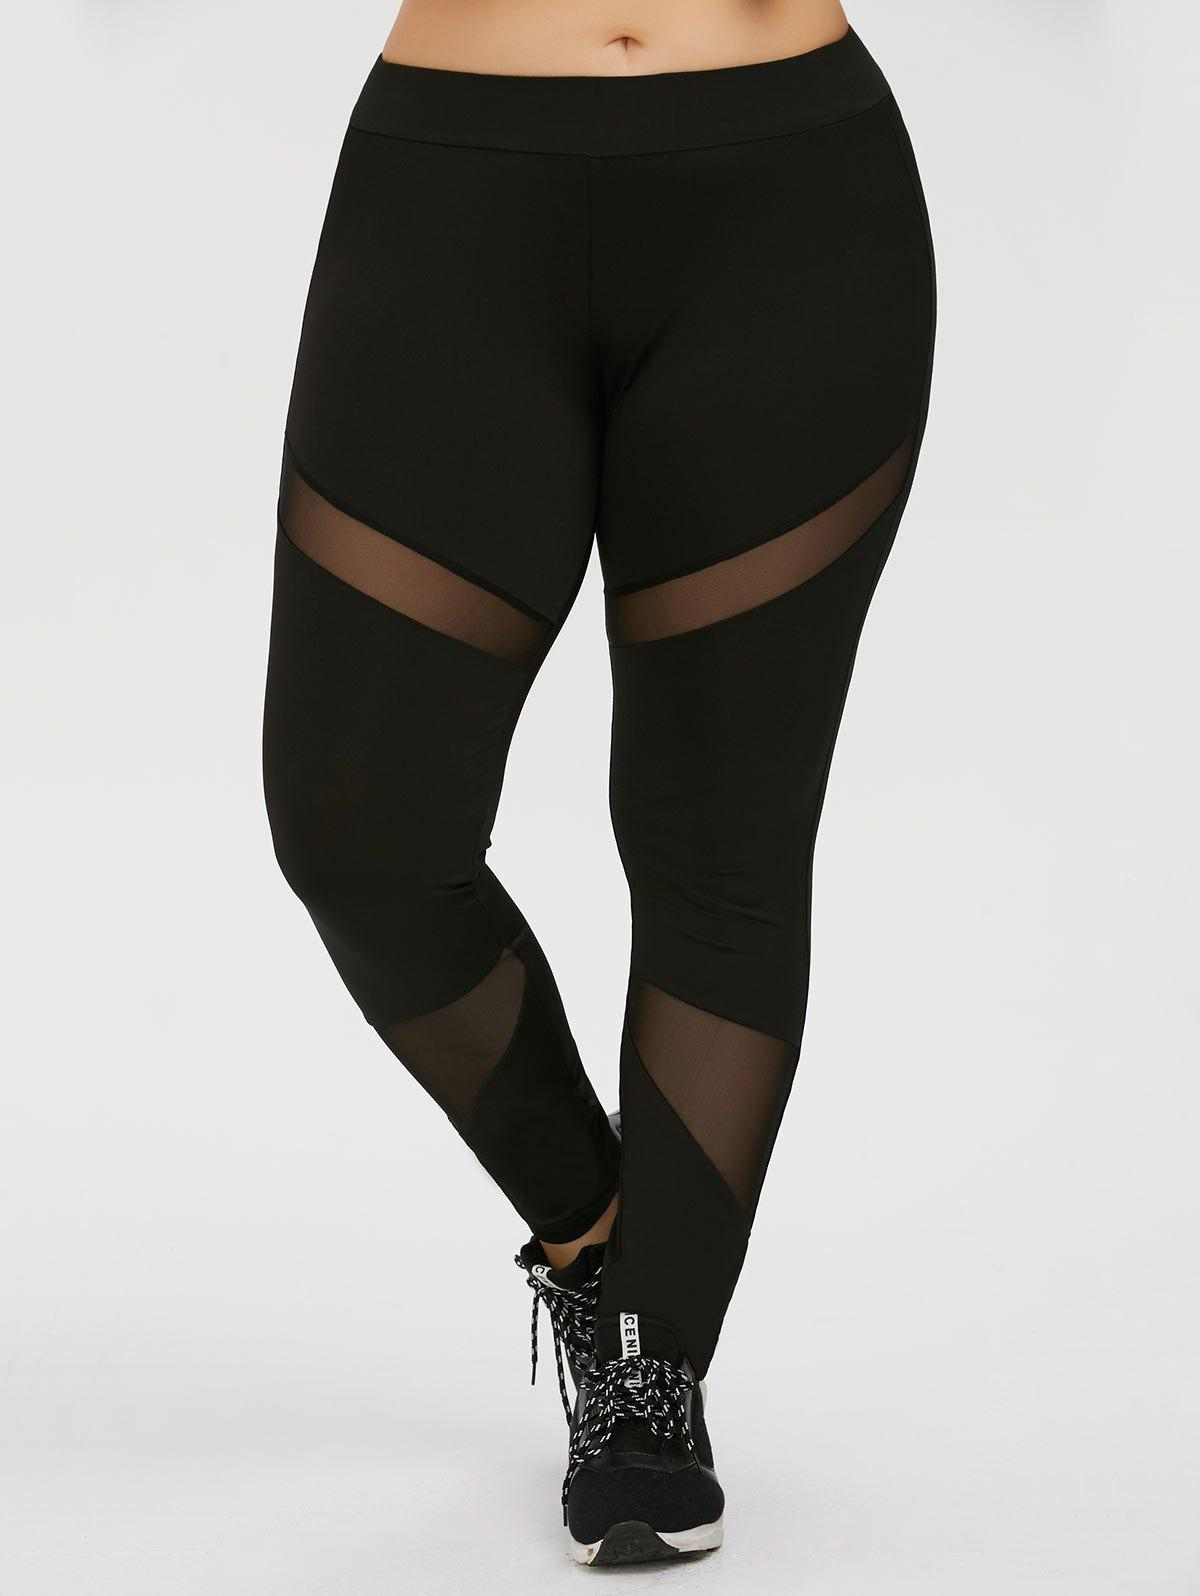 Plus Size Mesh Panel Workout Leggings sheer plus size mesh panel workout leggings